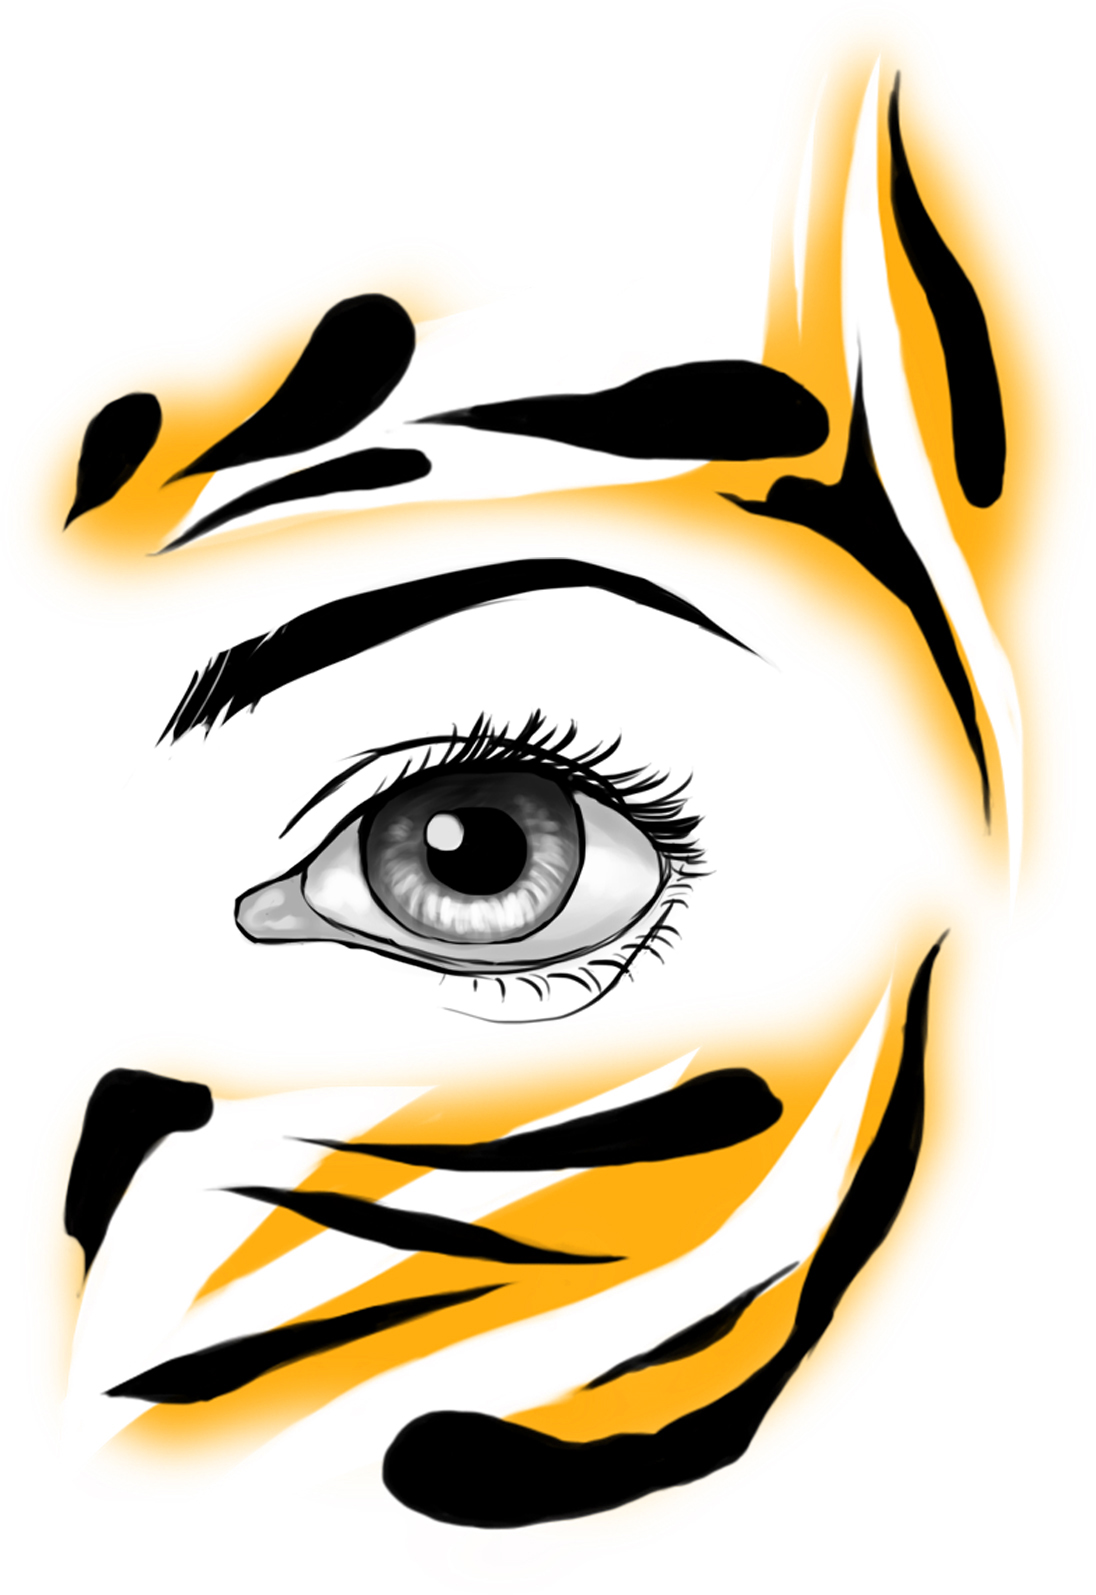 Tiger face paints